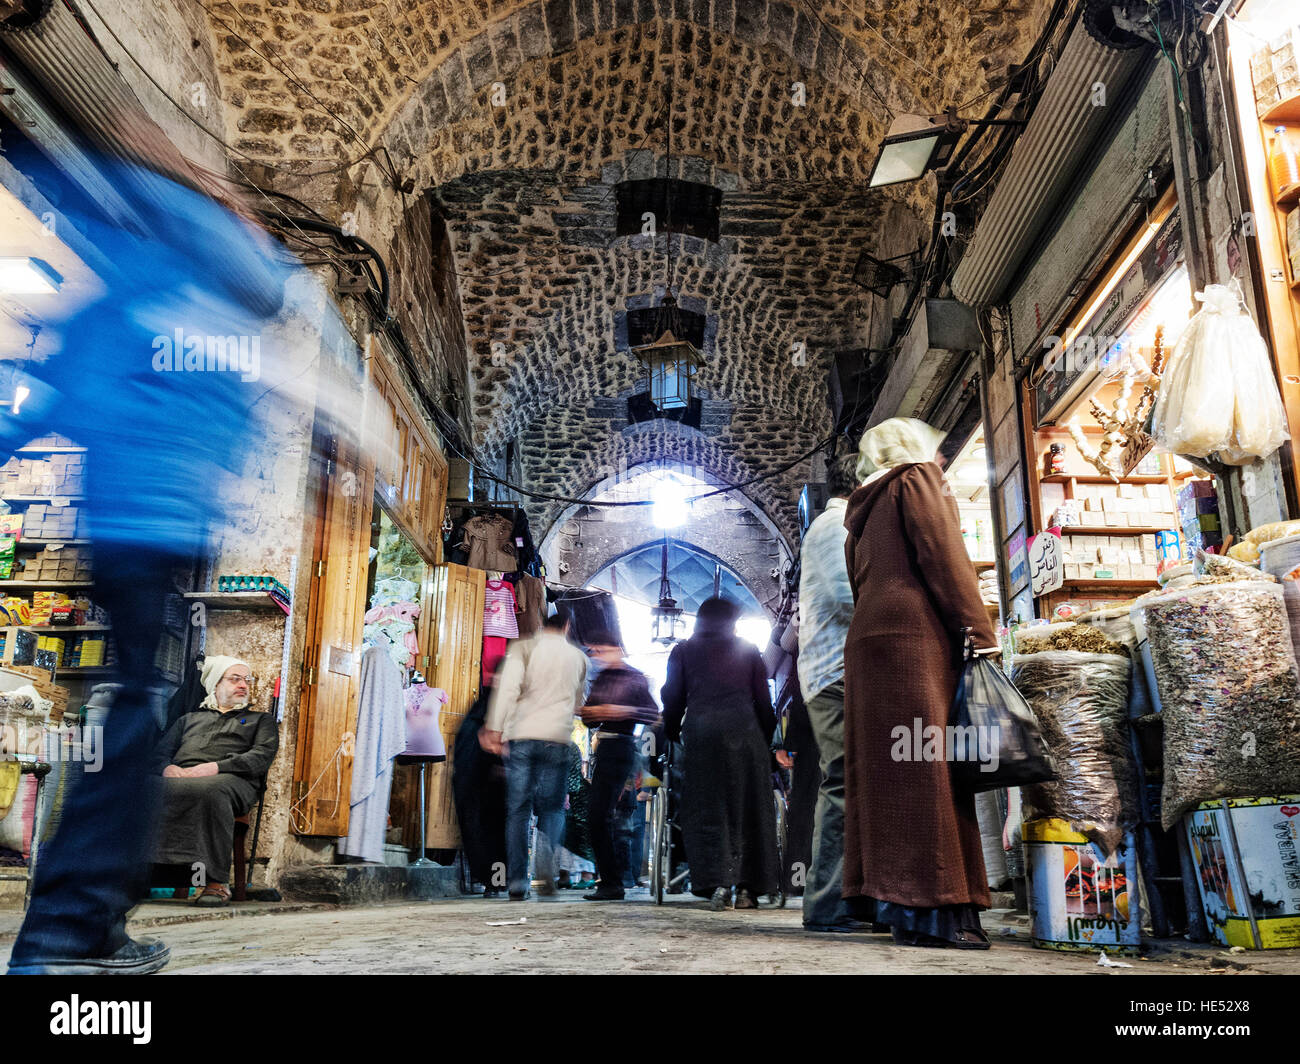 busy souk market shopping street in old town of aleppo syria - Stock Image